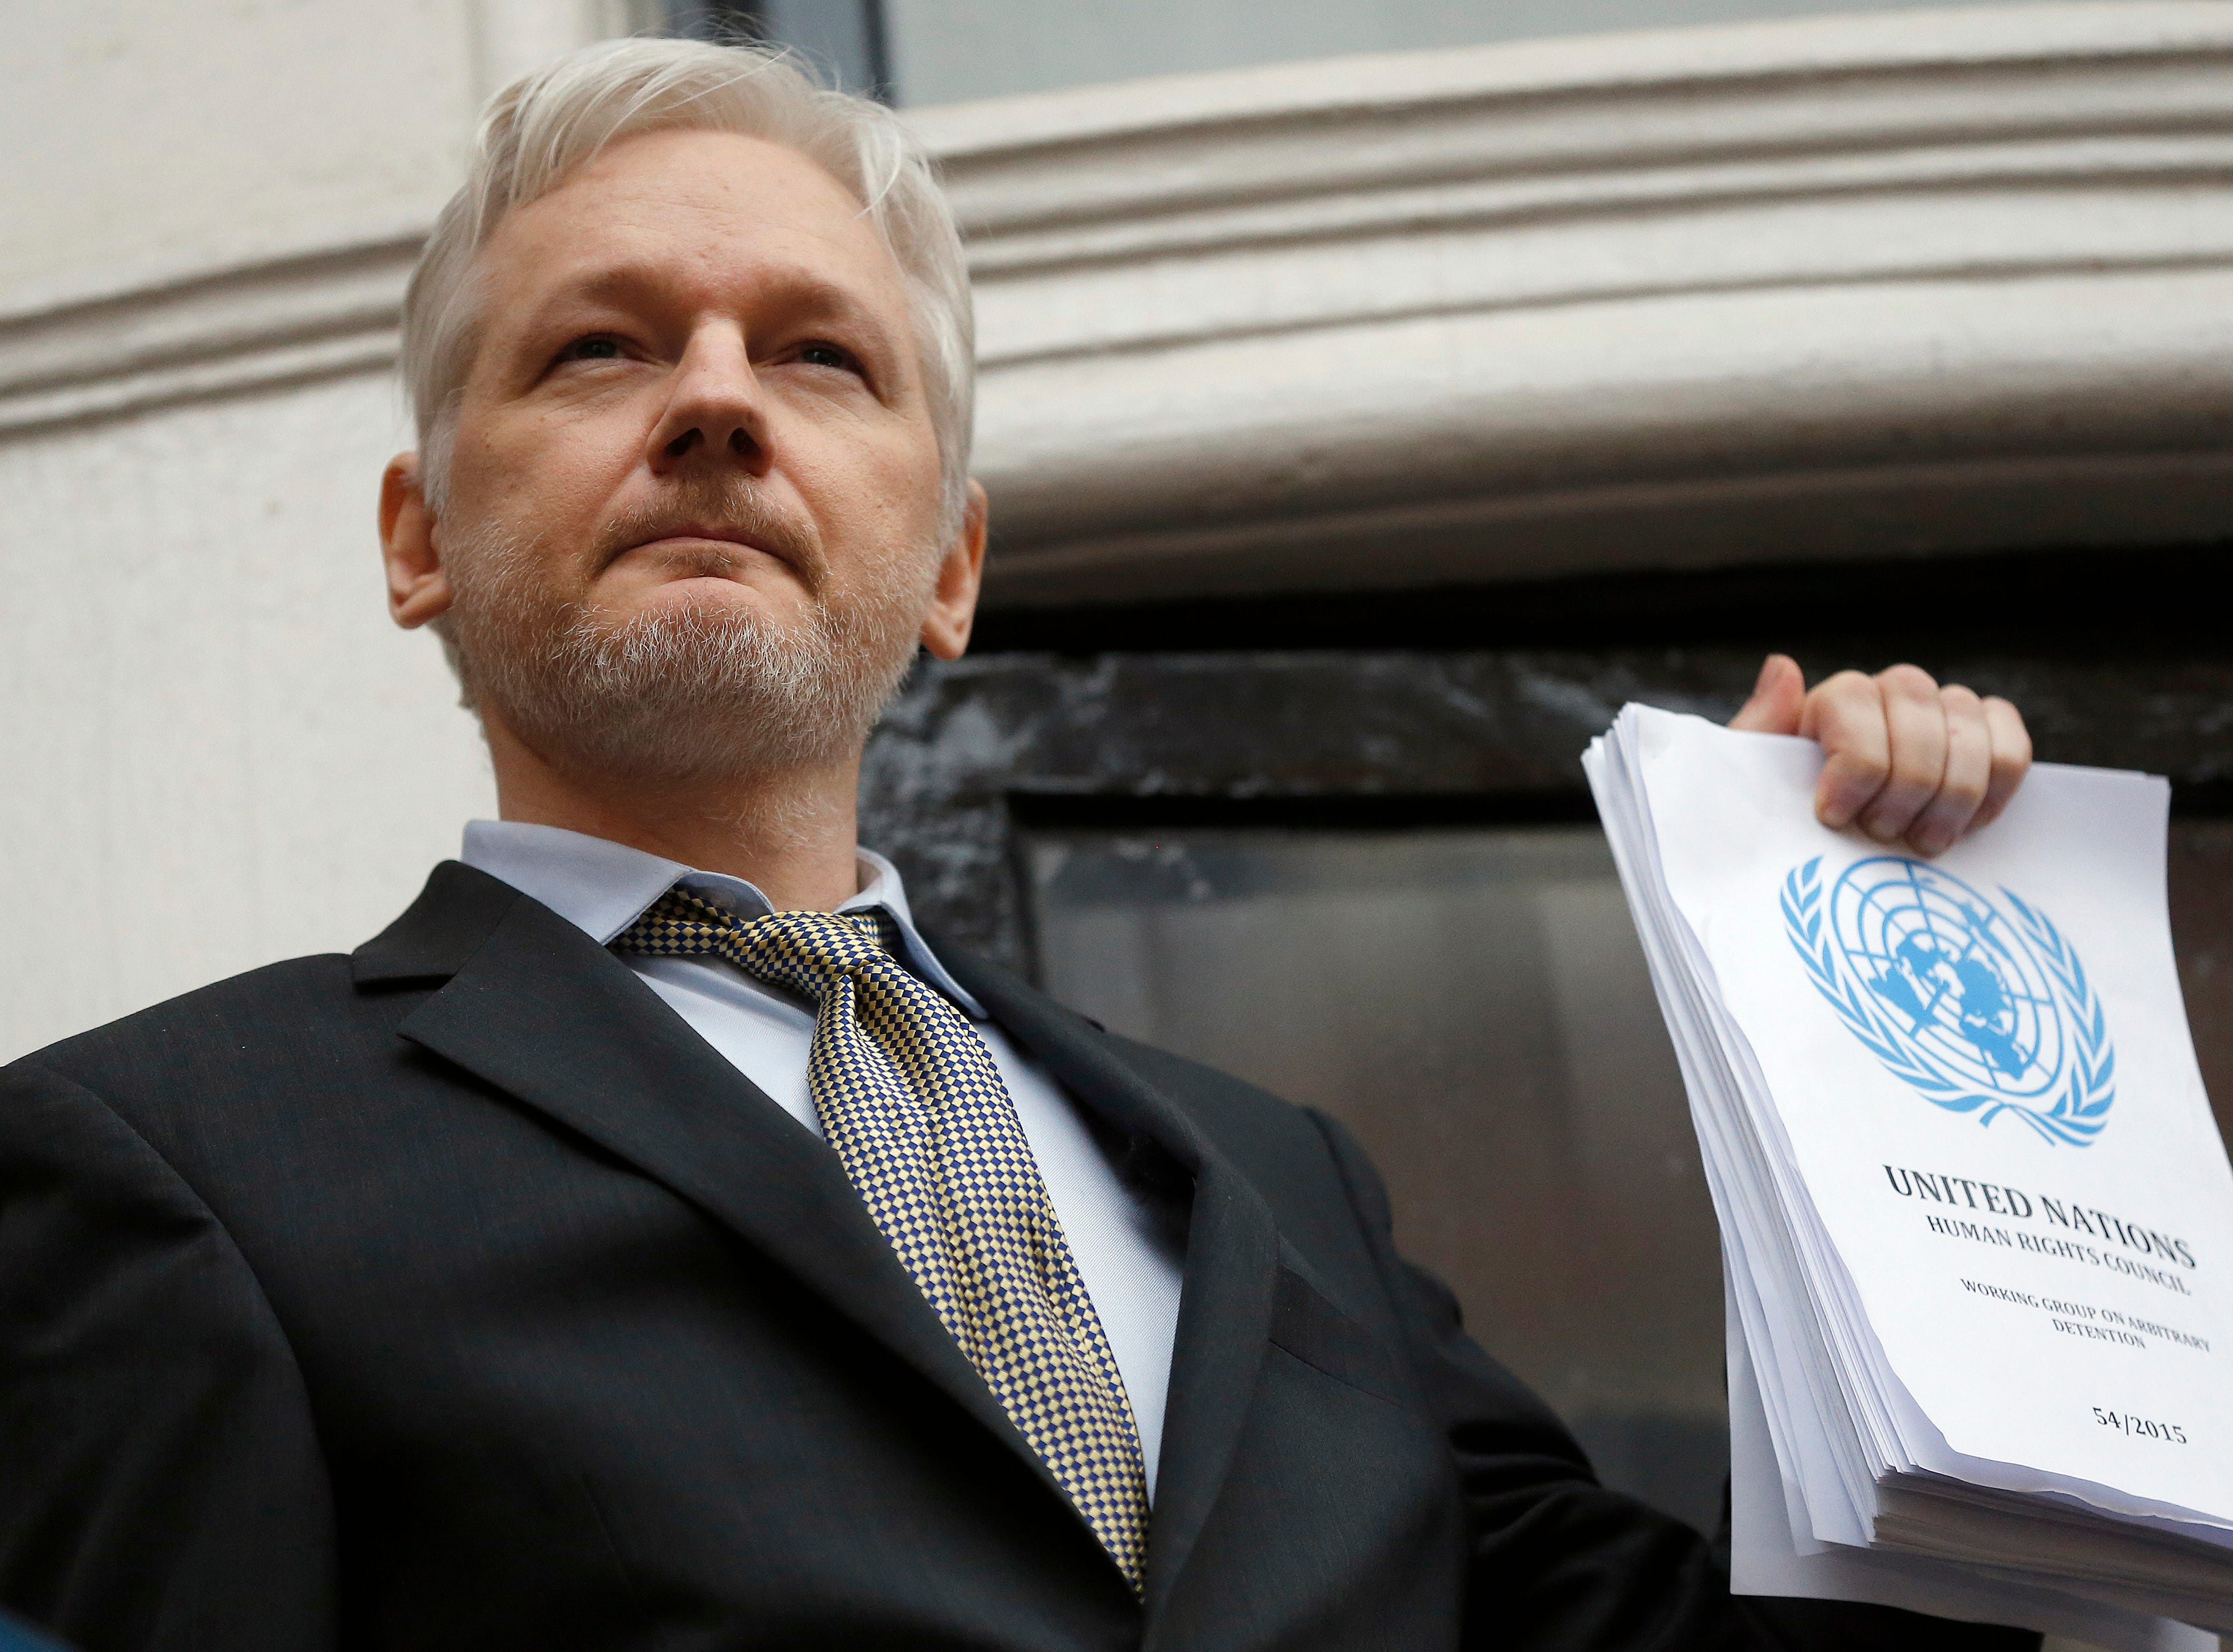 Julian Assange, seen here in 2016, often used the balcony at the embassy to address the media.